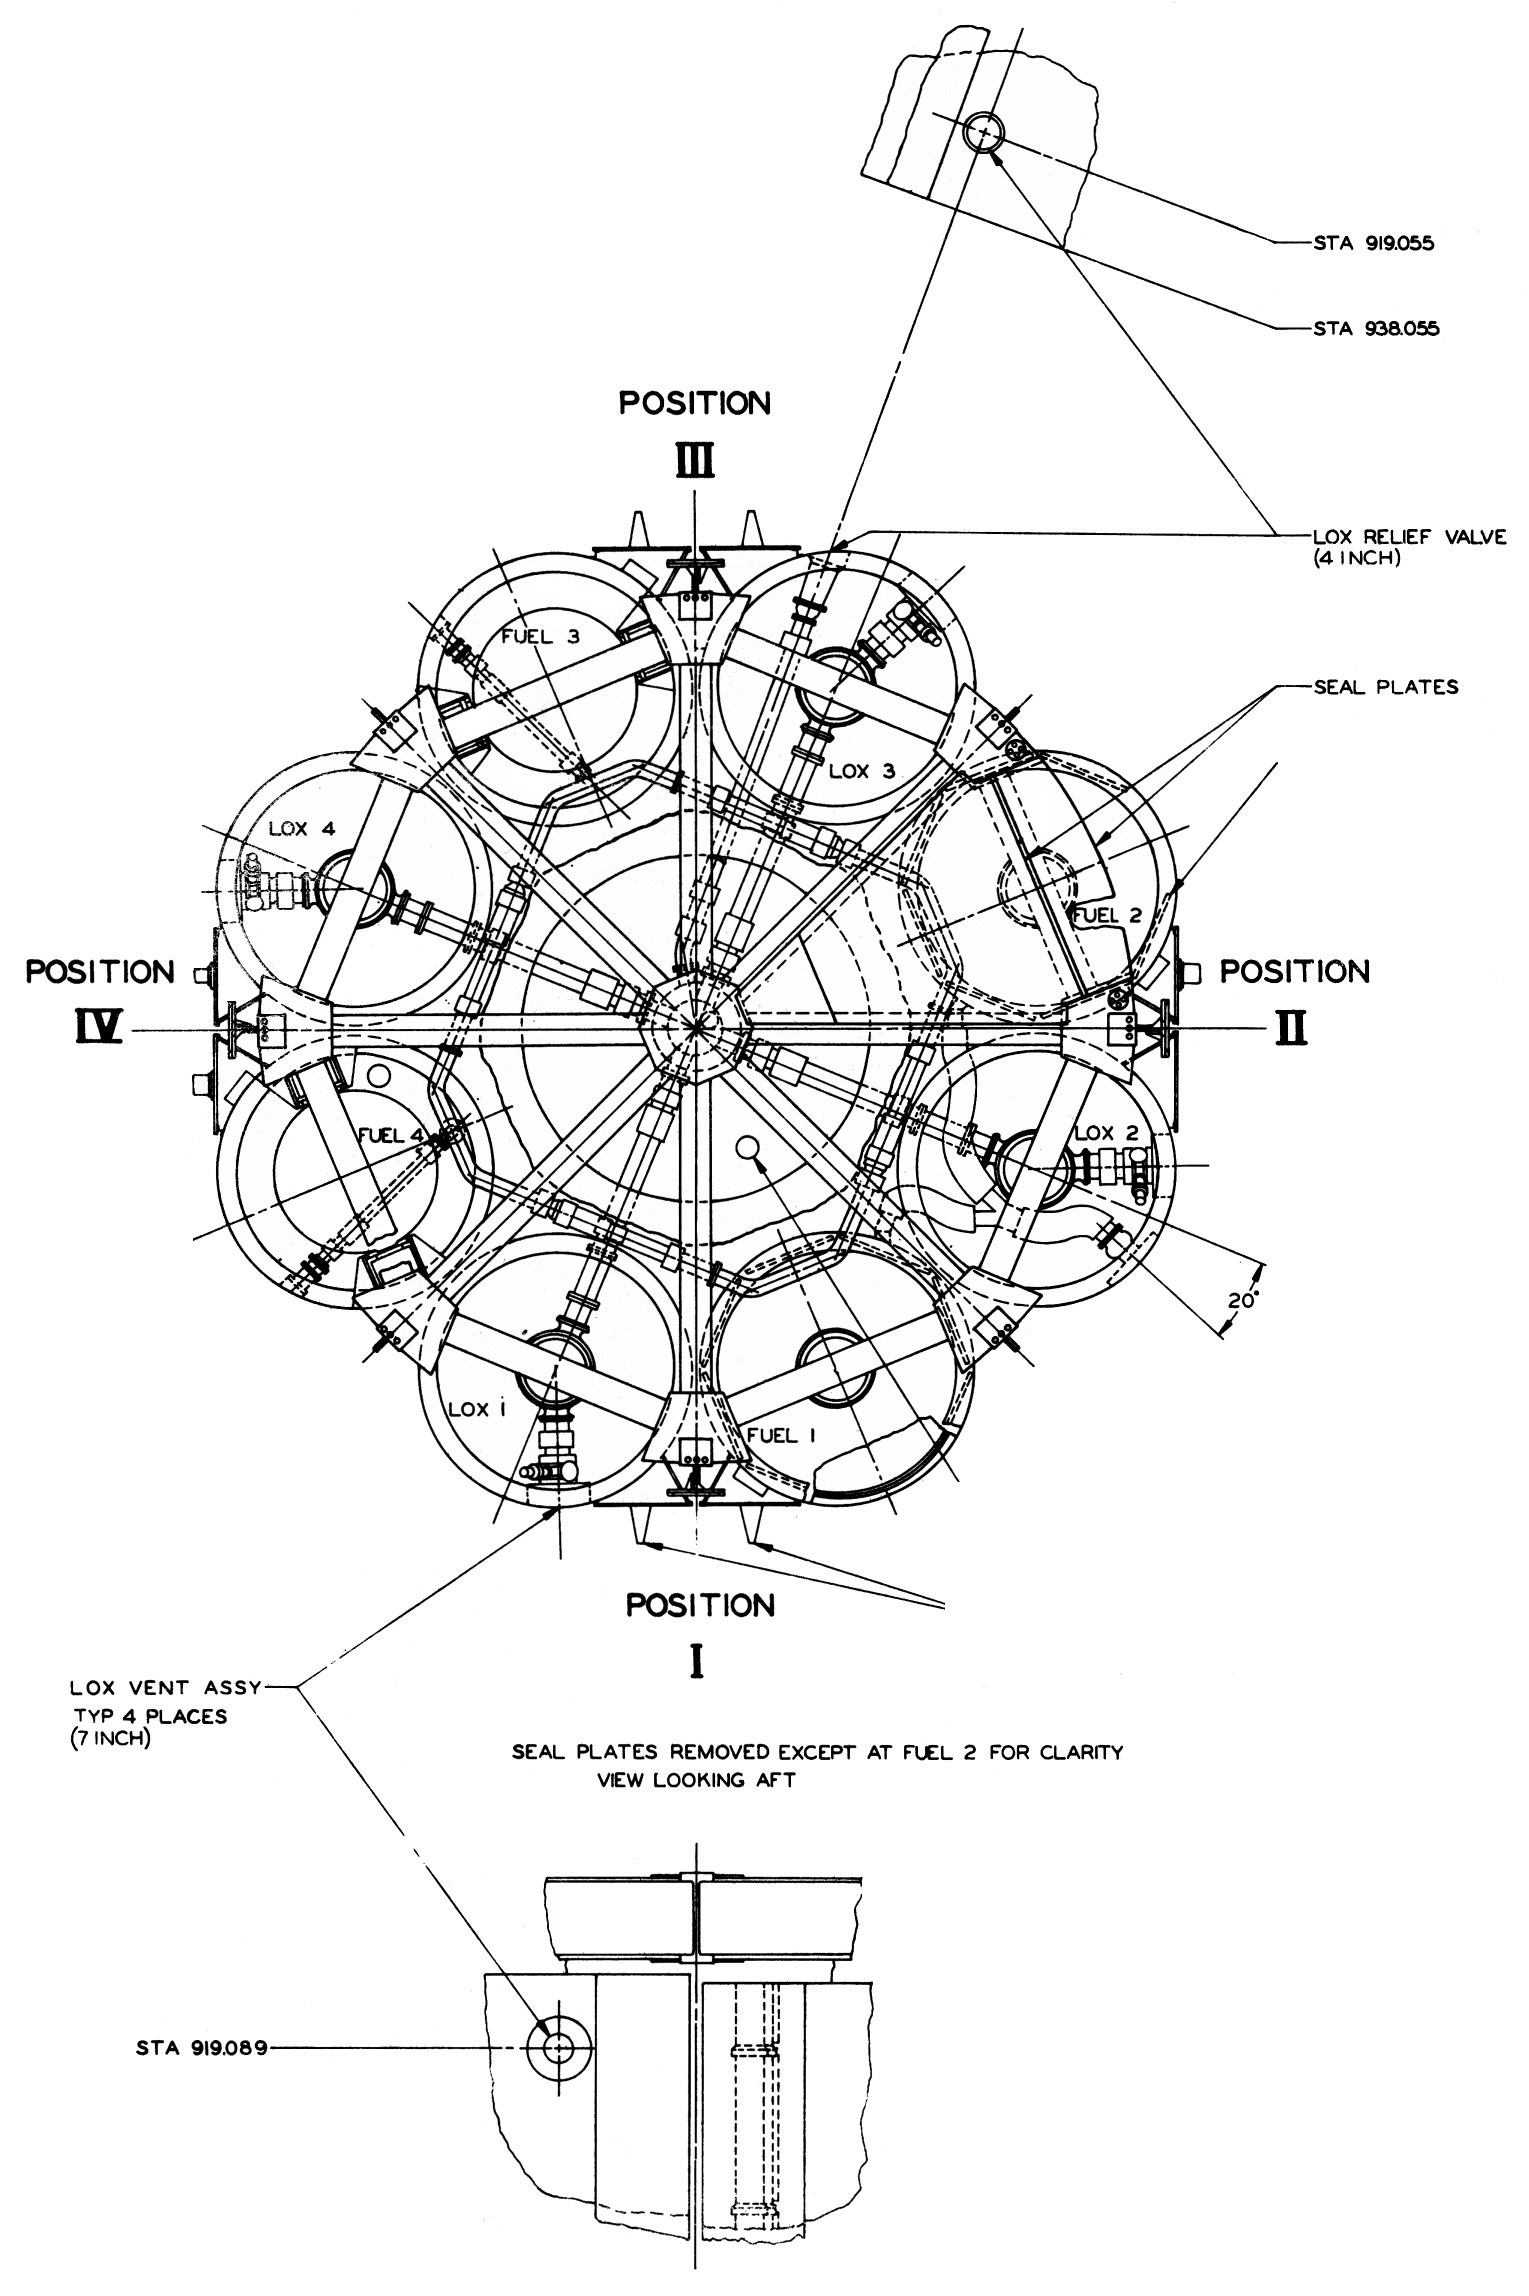 Relief Valve Diagram